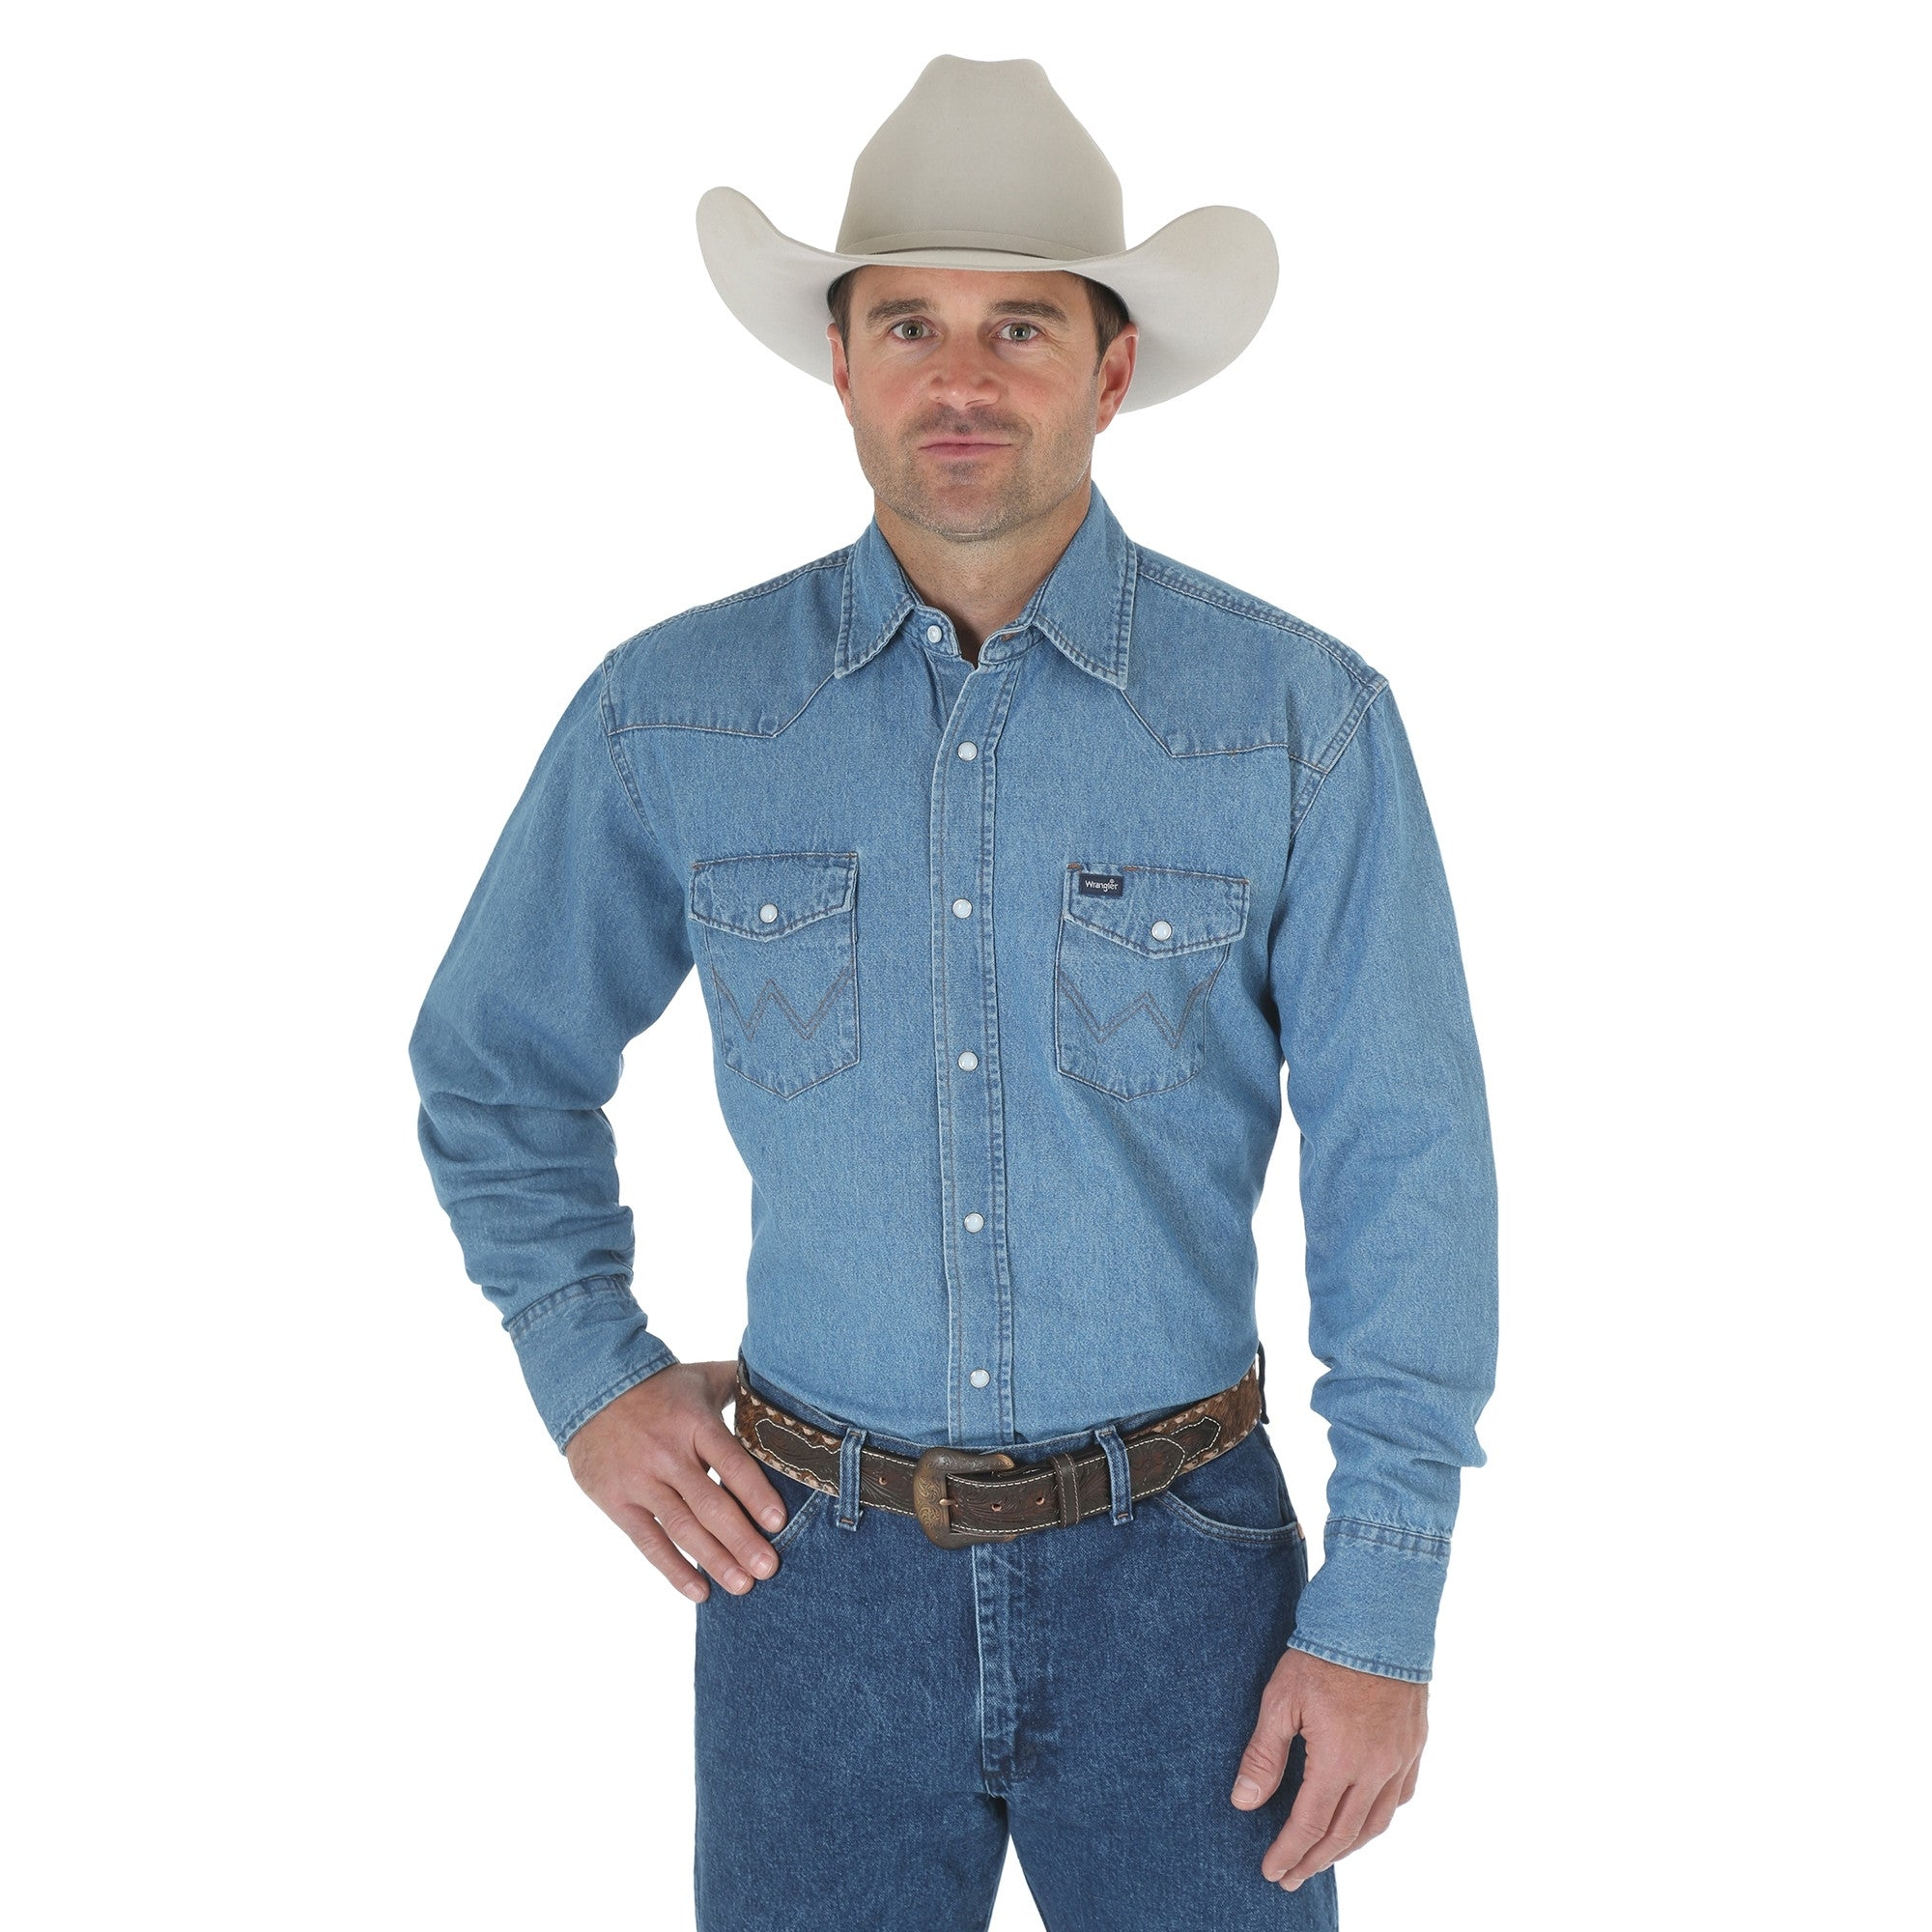 610ee182db0 Wrangler Work Shirts With Snaps - BCD Tofu House